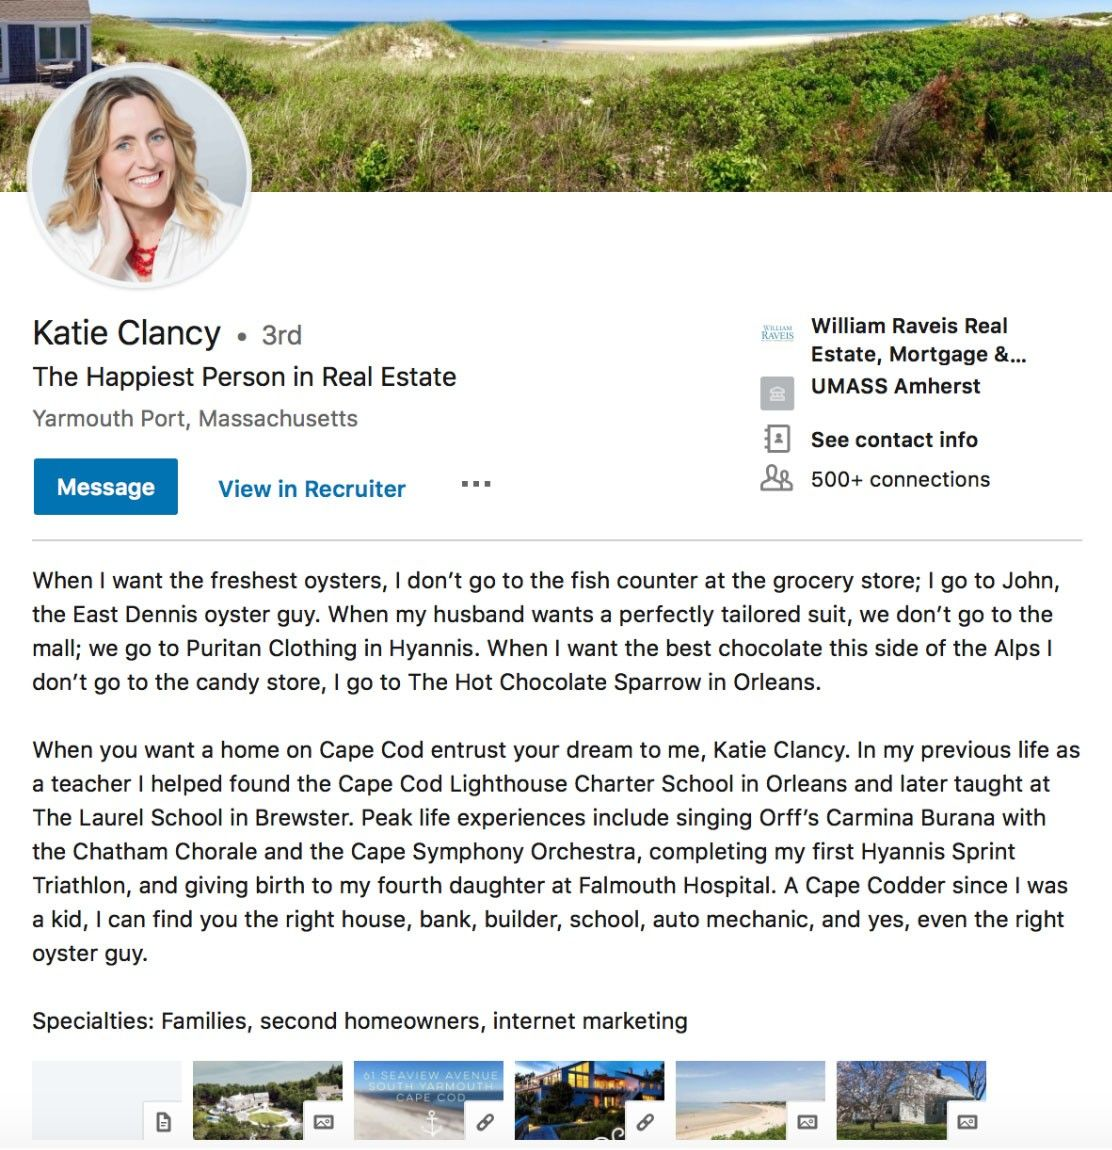 Katie clancy real estate agent linkedin profile in 2020